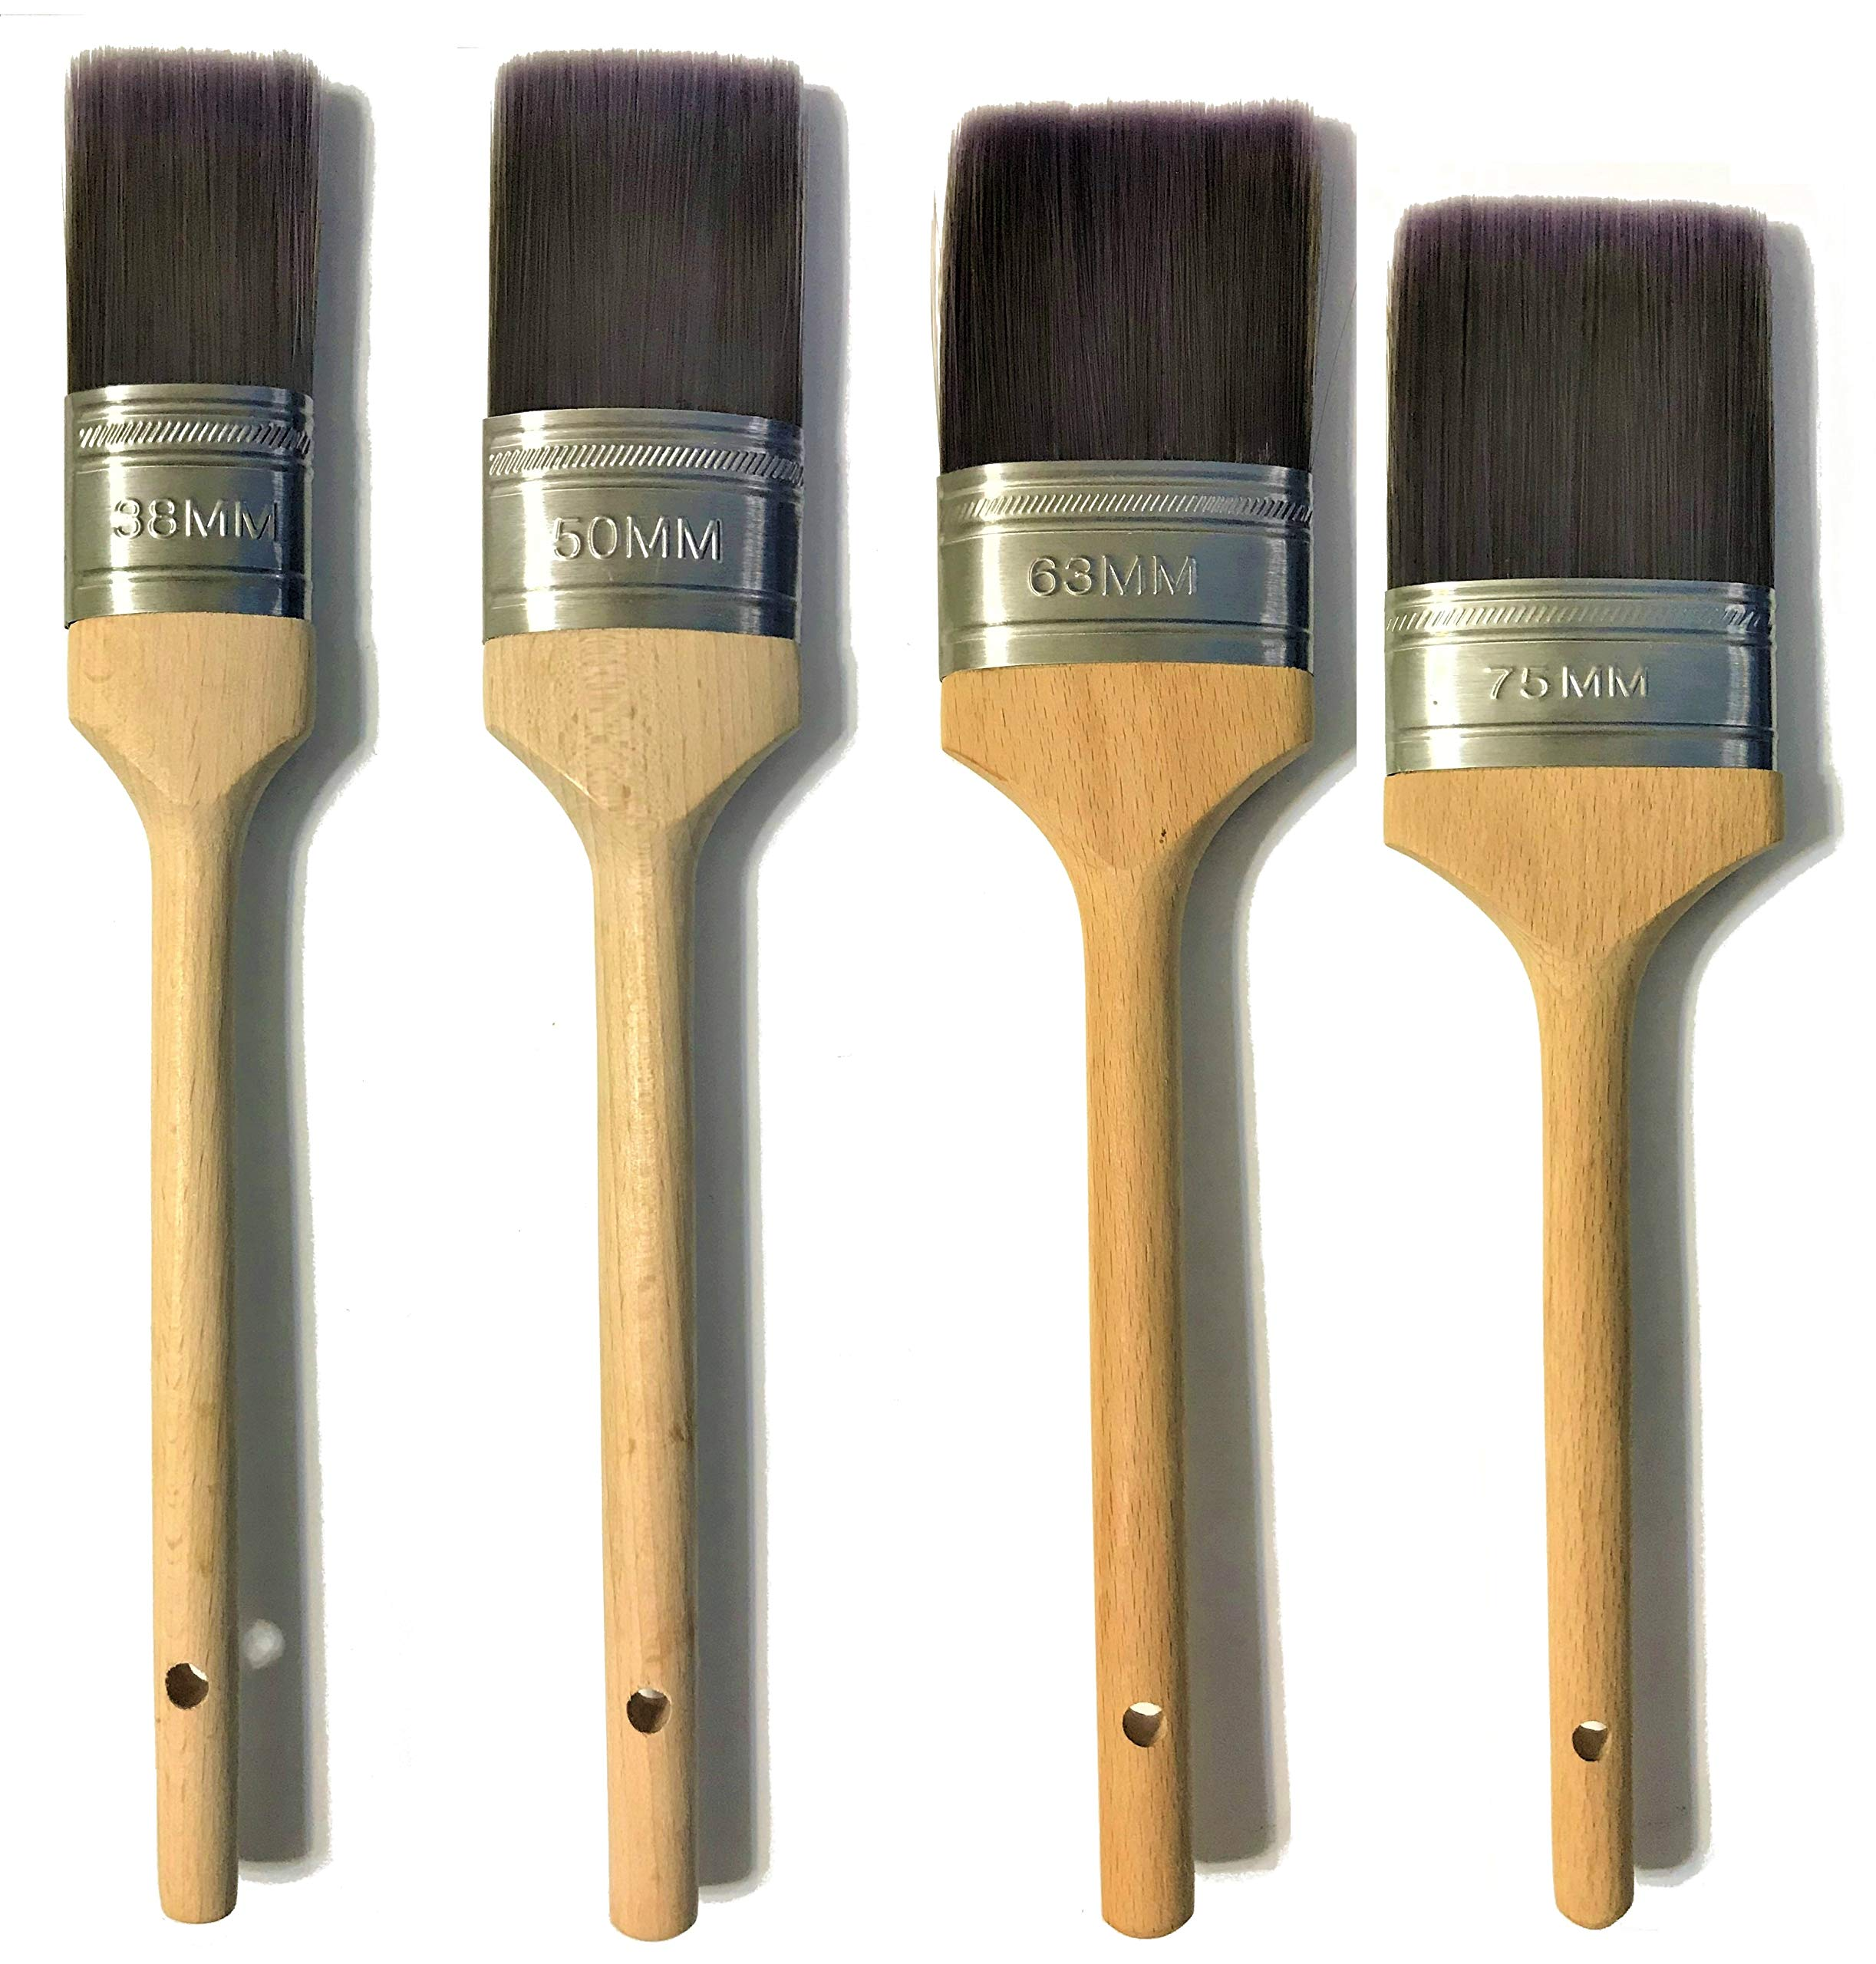 PANCLUB Oval Paint Brush Set 4 Pcs   1.5、2、2.5 and 3 inch   High Paint Pick Up and Excellent Spreading Rates   for Oil-Base and Water-Based Paints with Interior or Exterior Painting